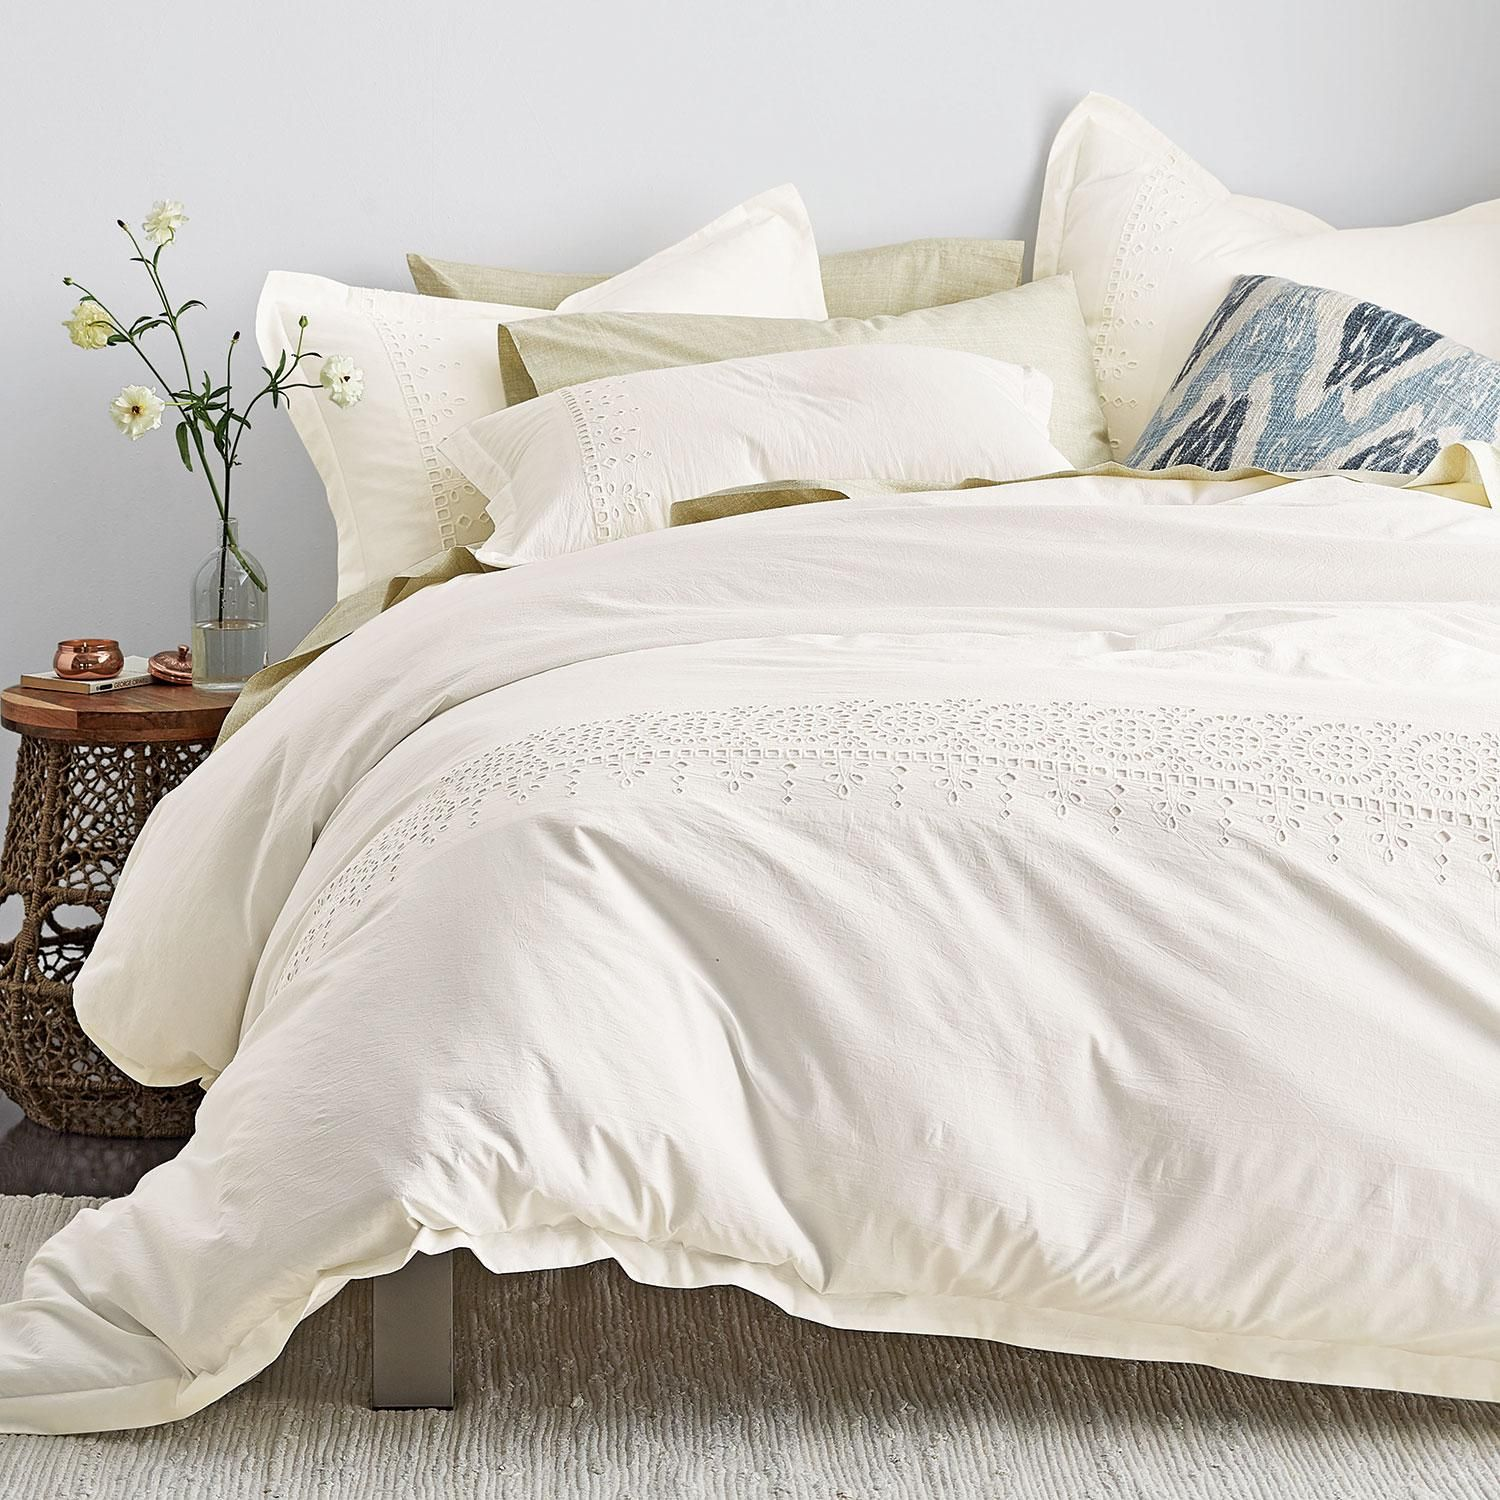 Emmie Duvet Cover Off White At The Company Store Bedding Duvet Covers Duvet Covers Queen Luxury Bedding Bed Linens Luxury Bedding Sets